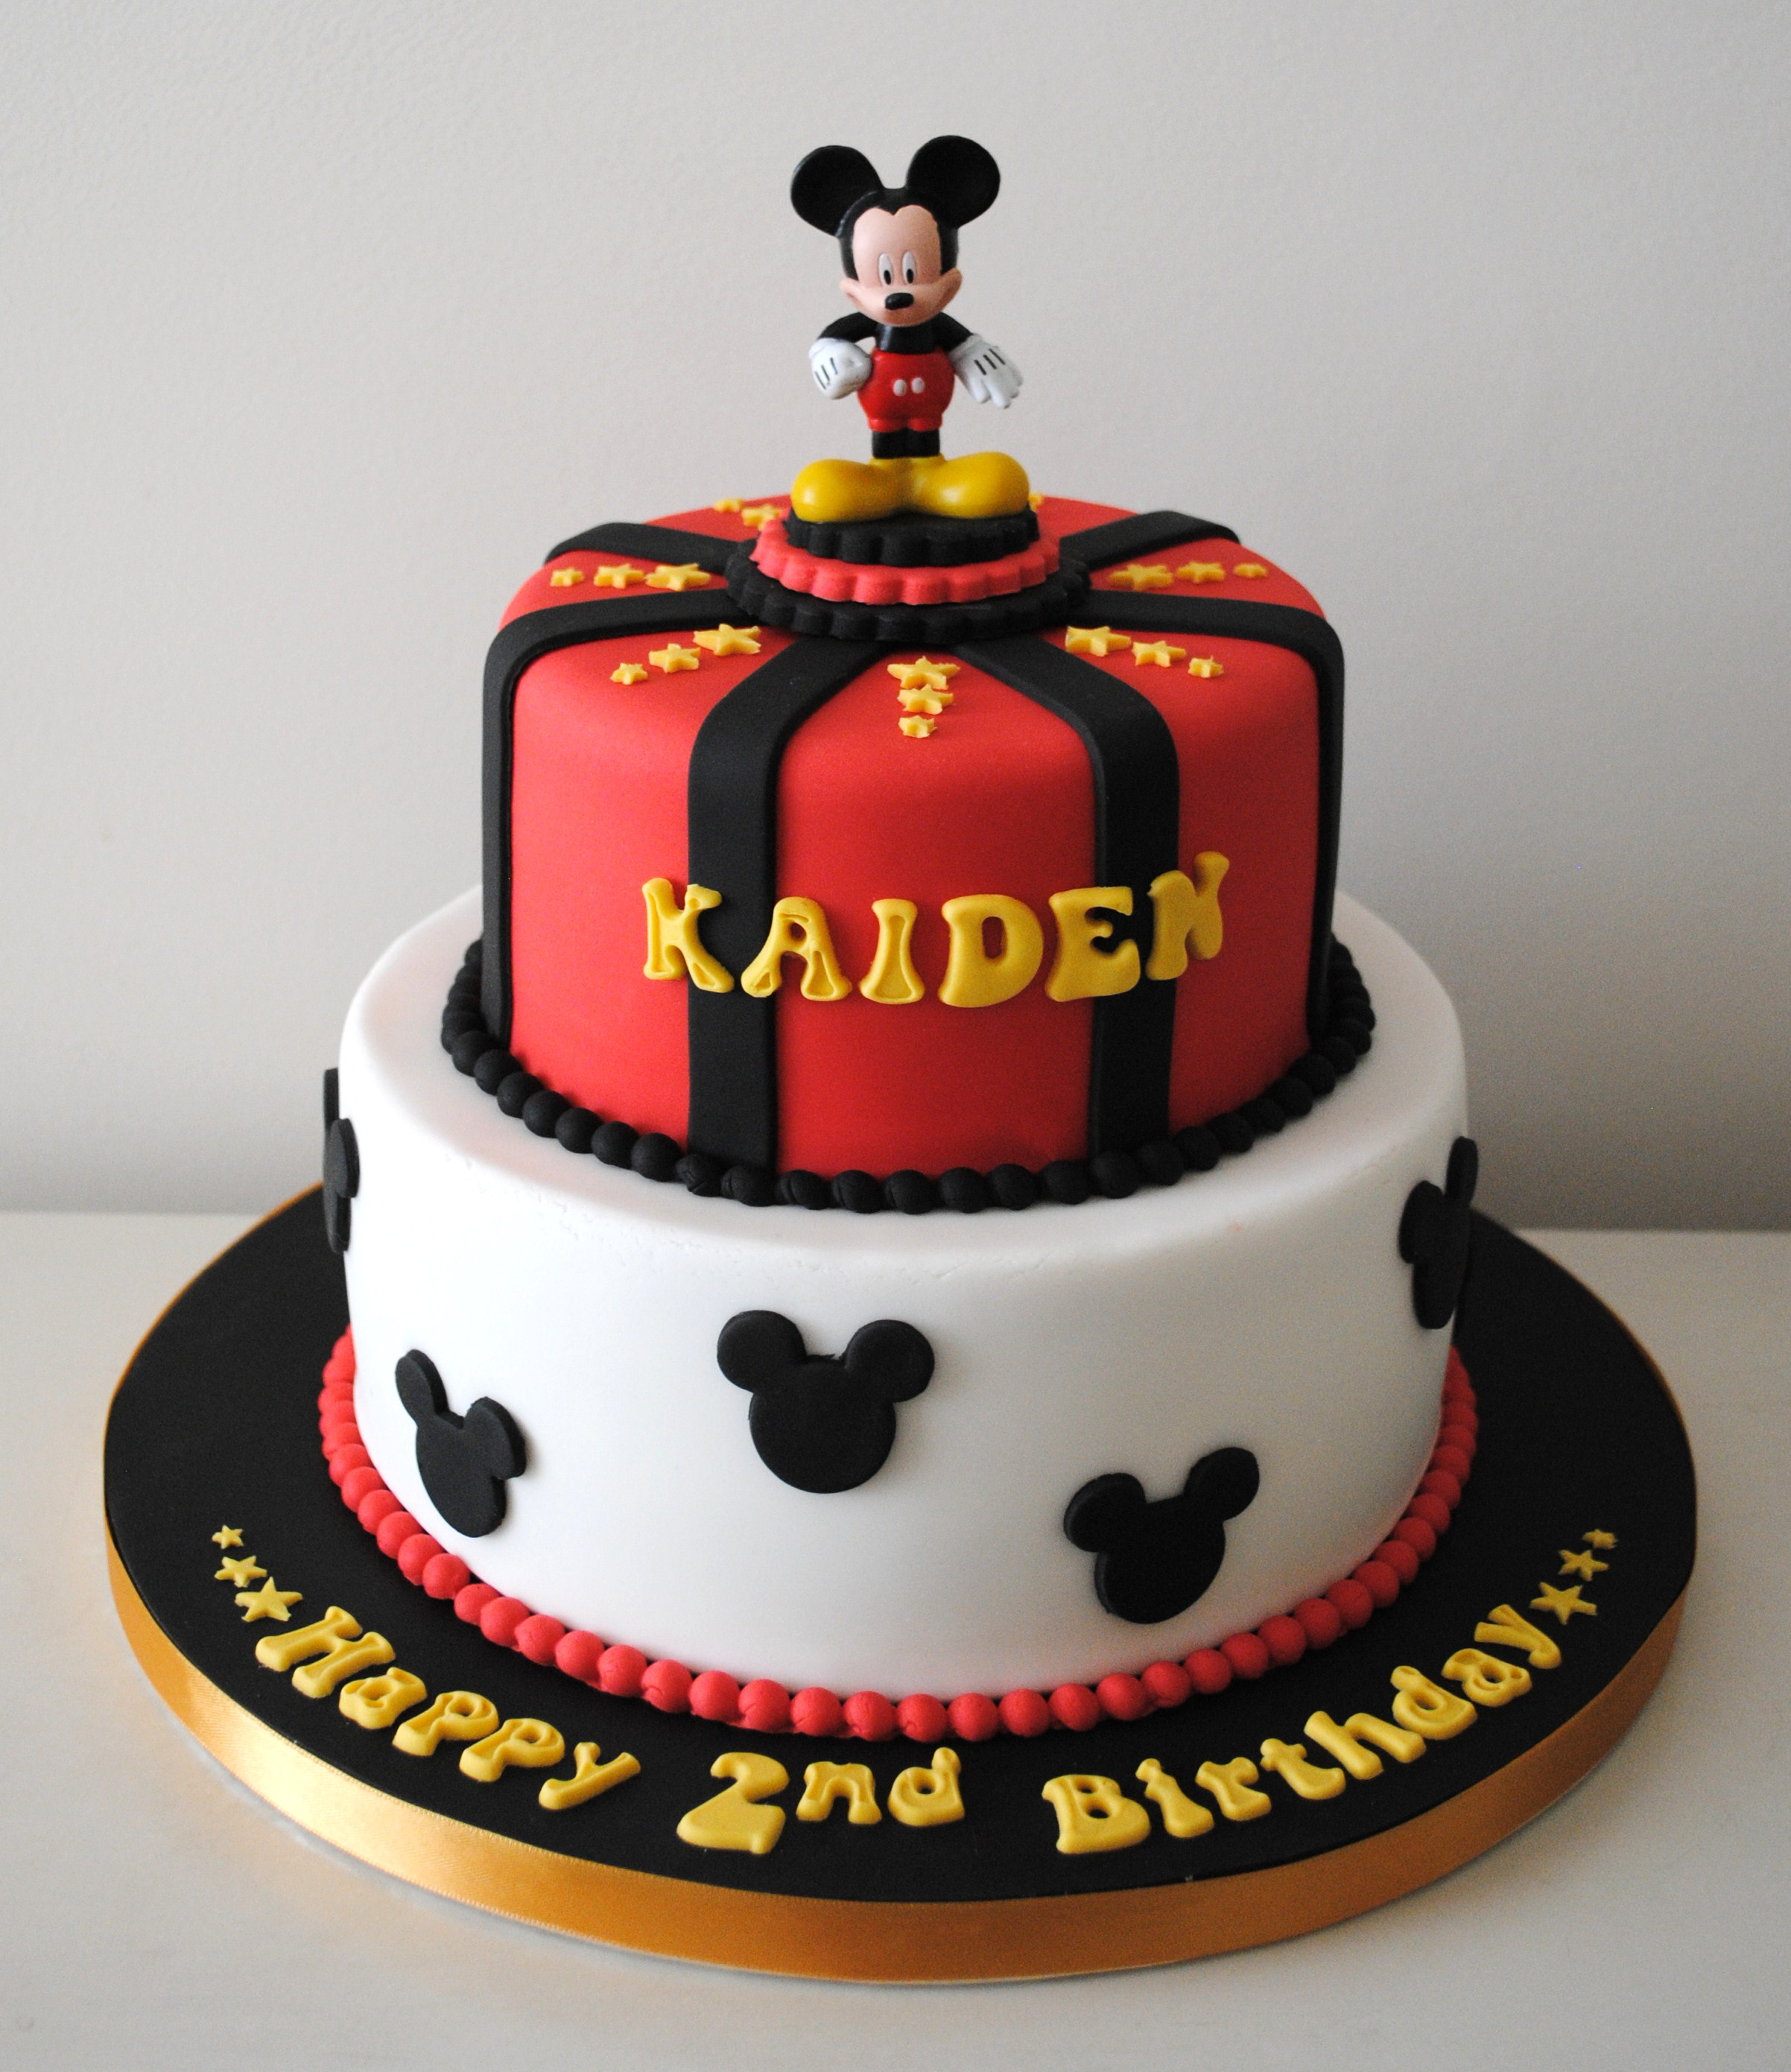 Enjoyable Miss Cupcakes Blog Archive Mickey Mouse Birthday Cake Funny Birthday Cards Online Fluifree Goldxyz